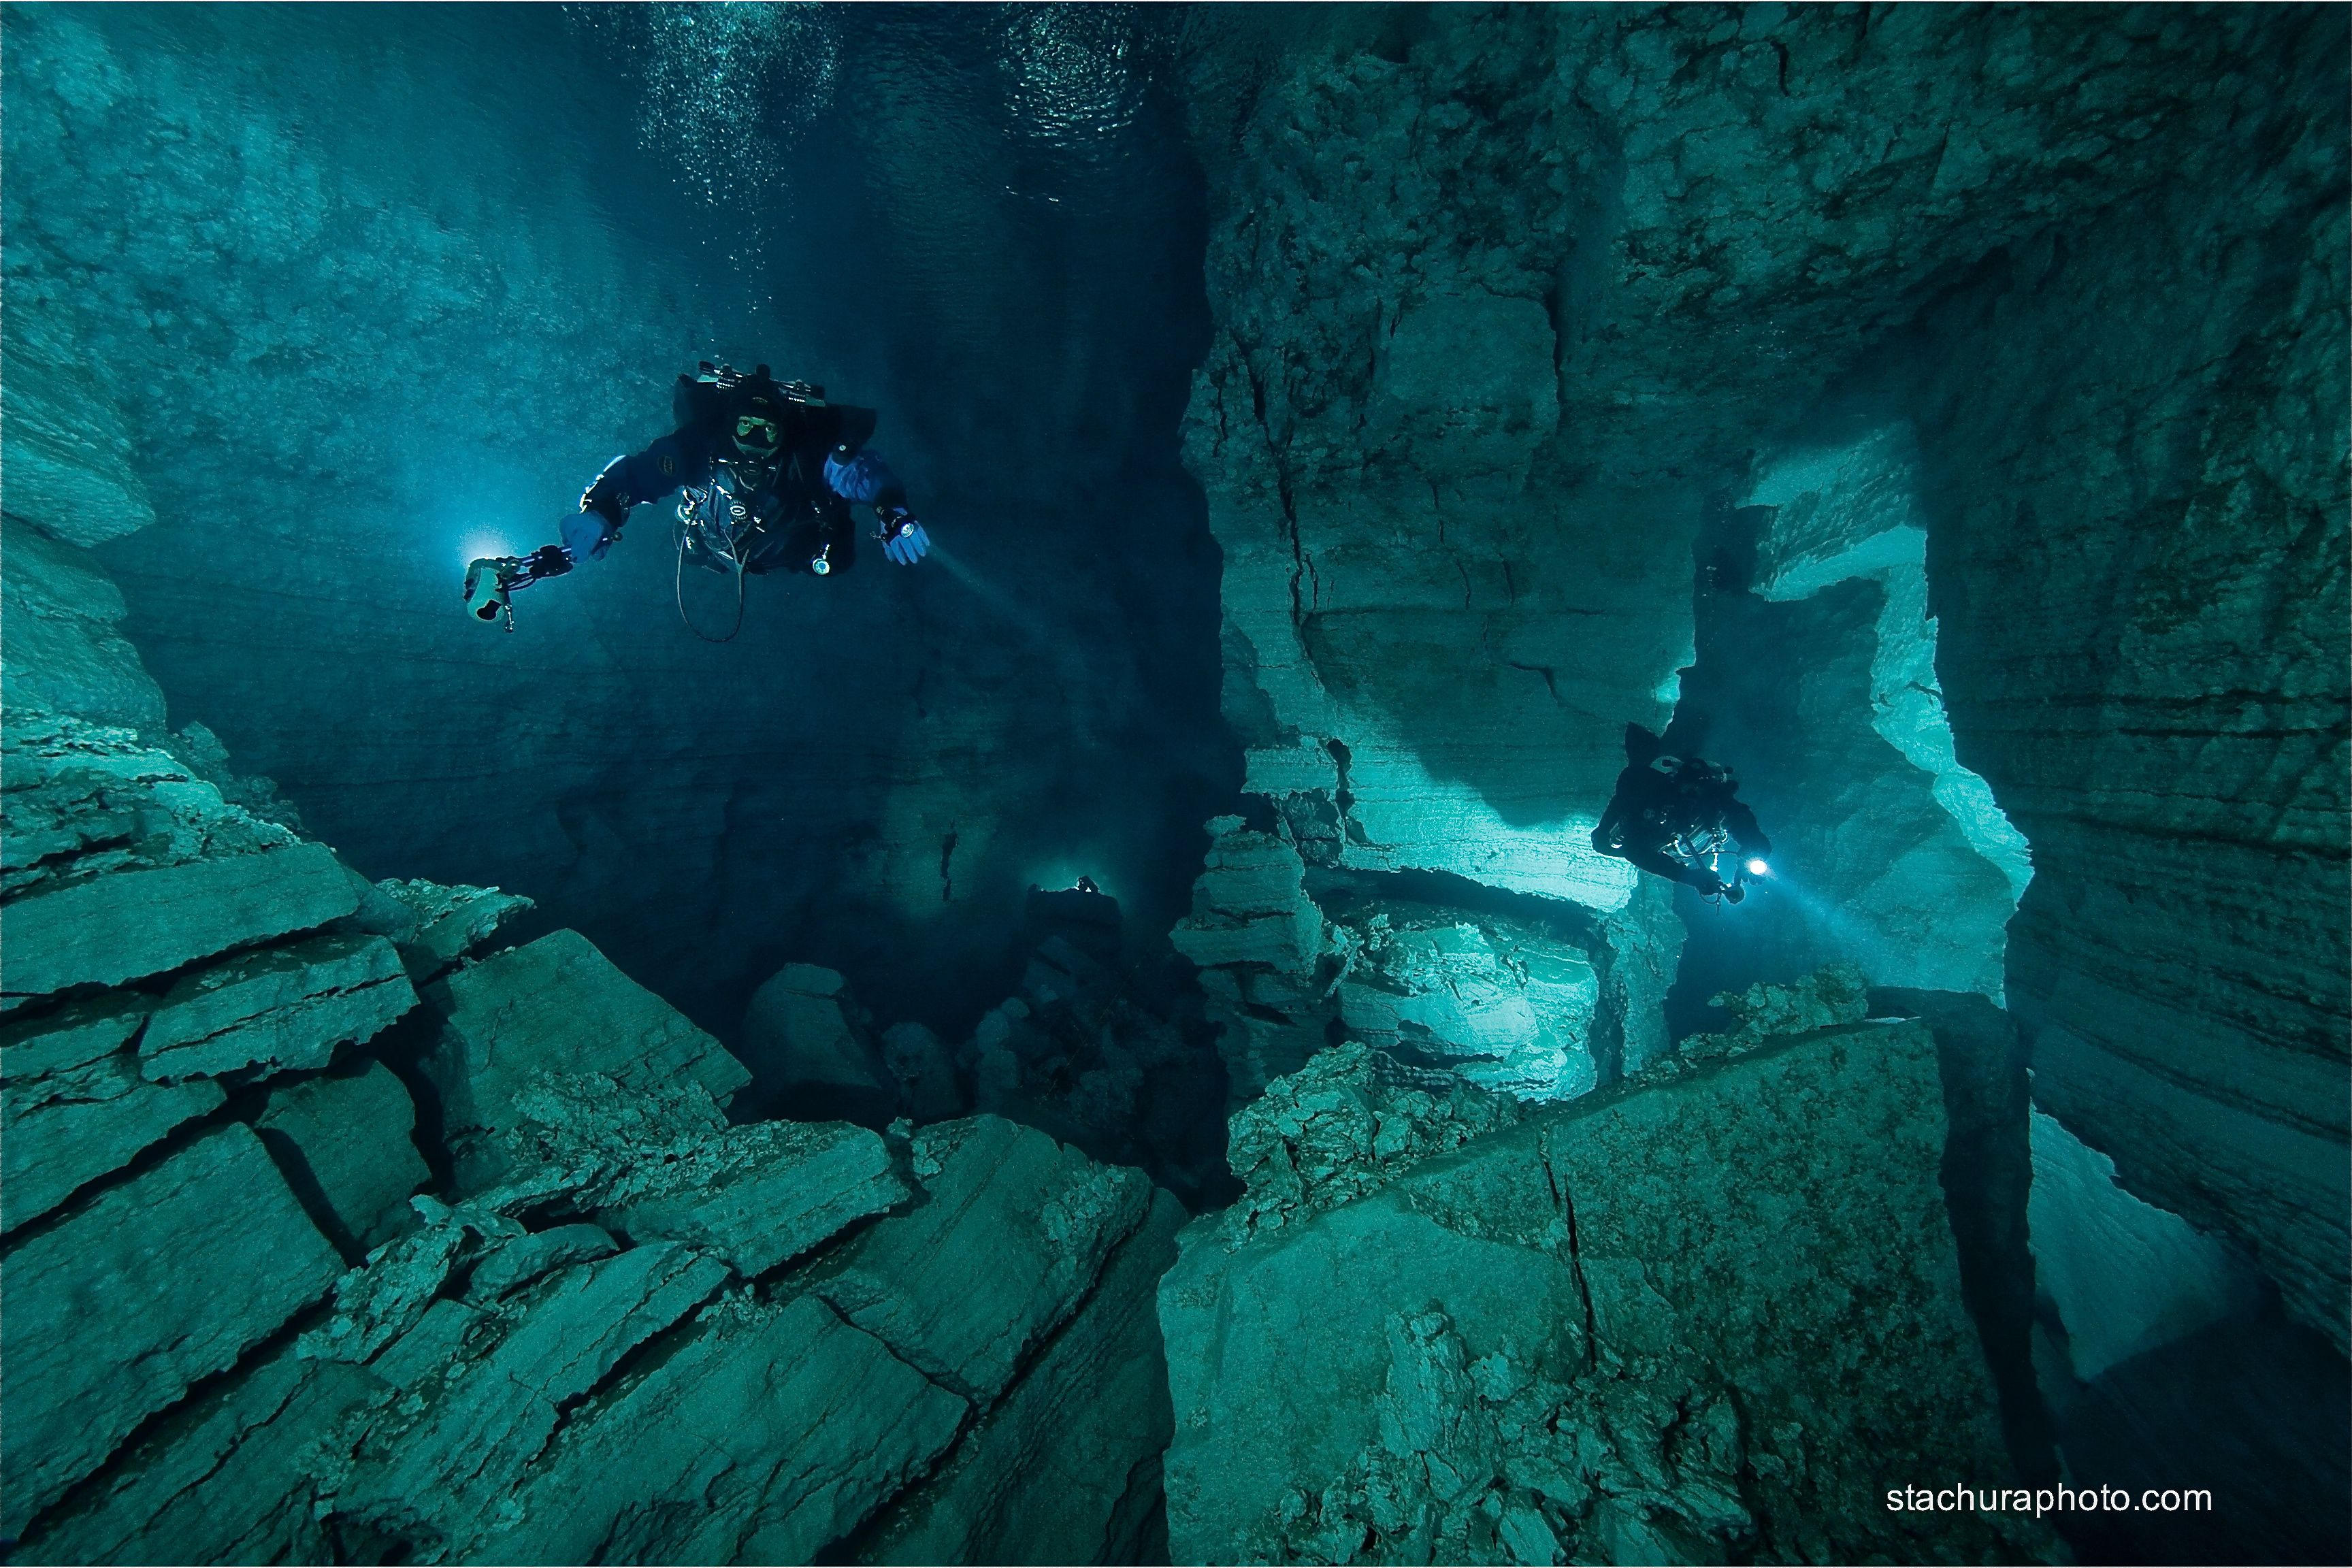 Orda cave,Photo taken in Russia. picture, Cave diving ...